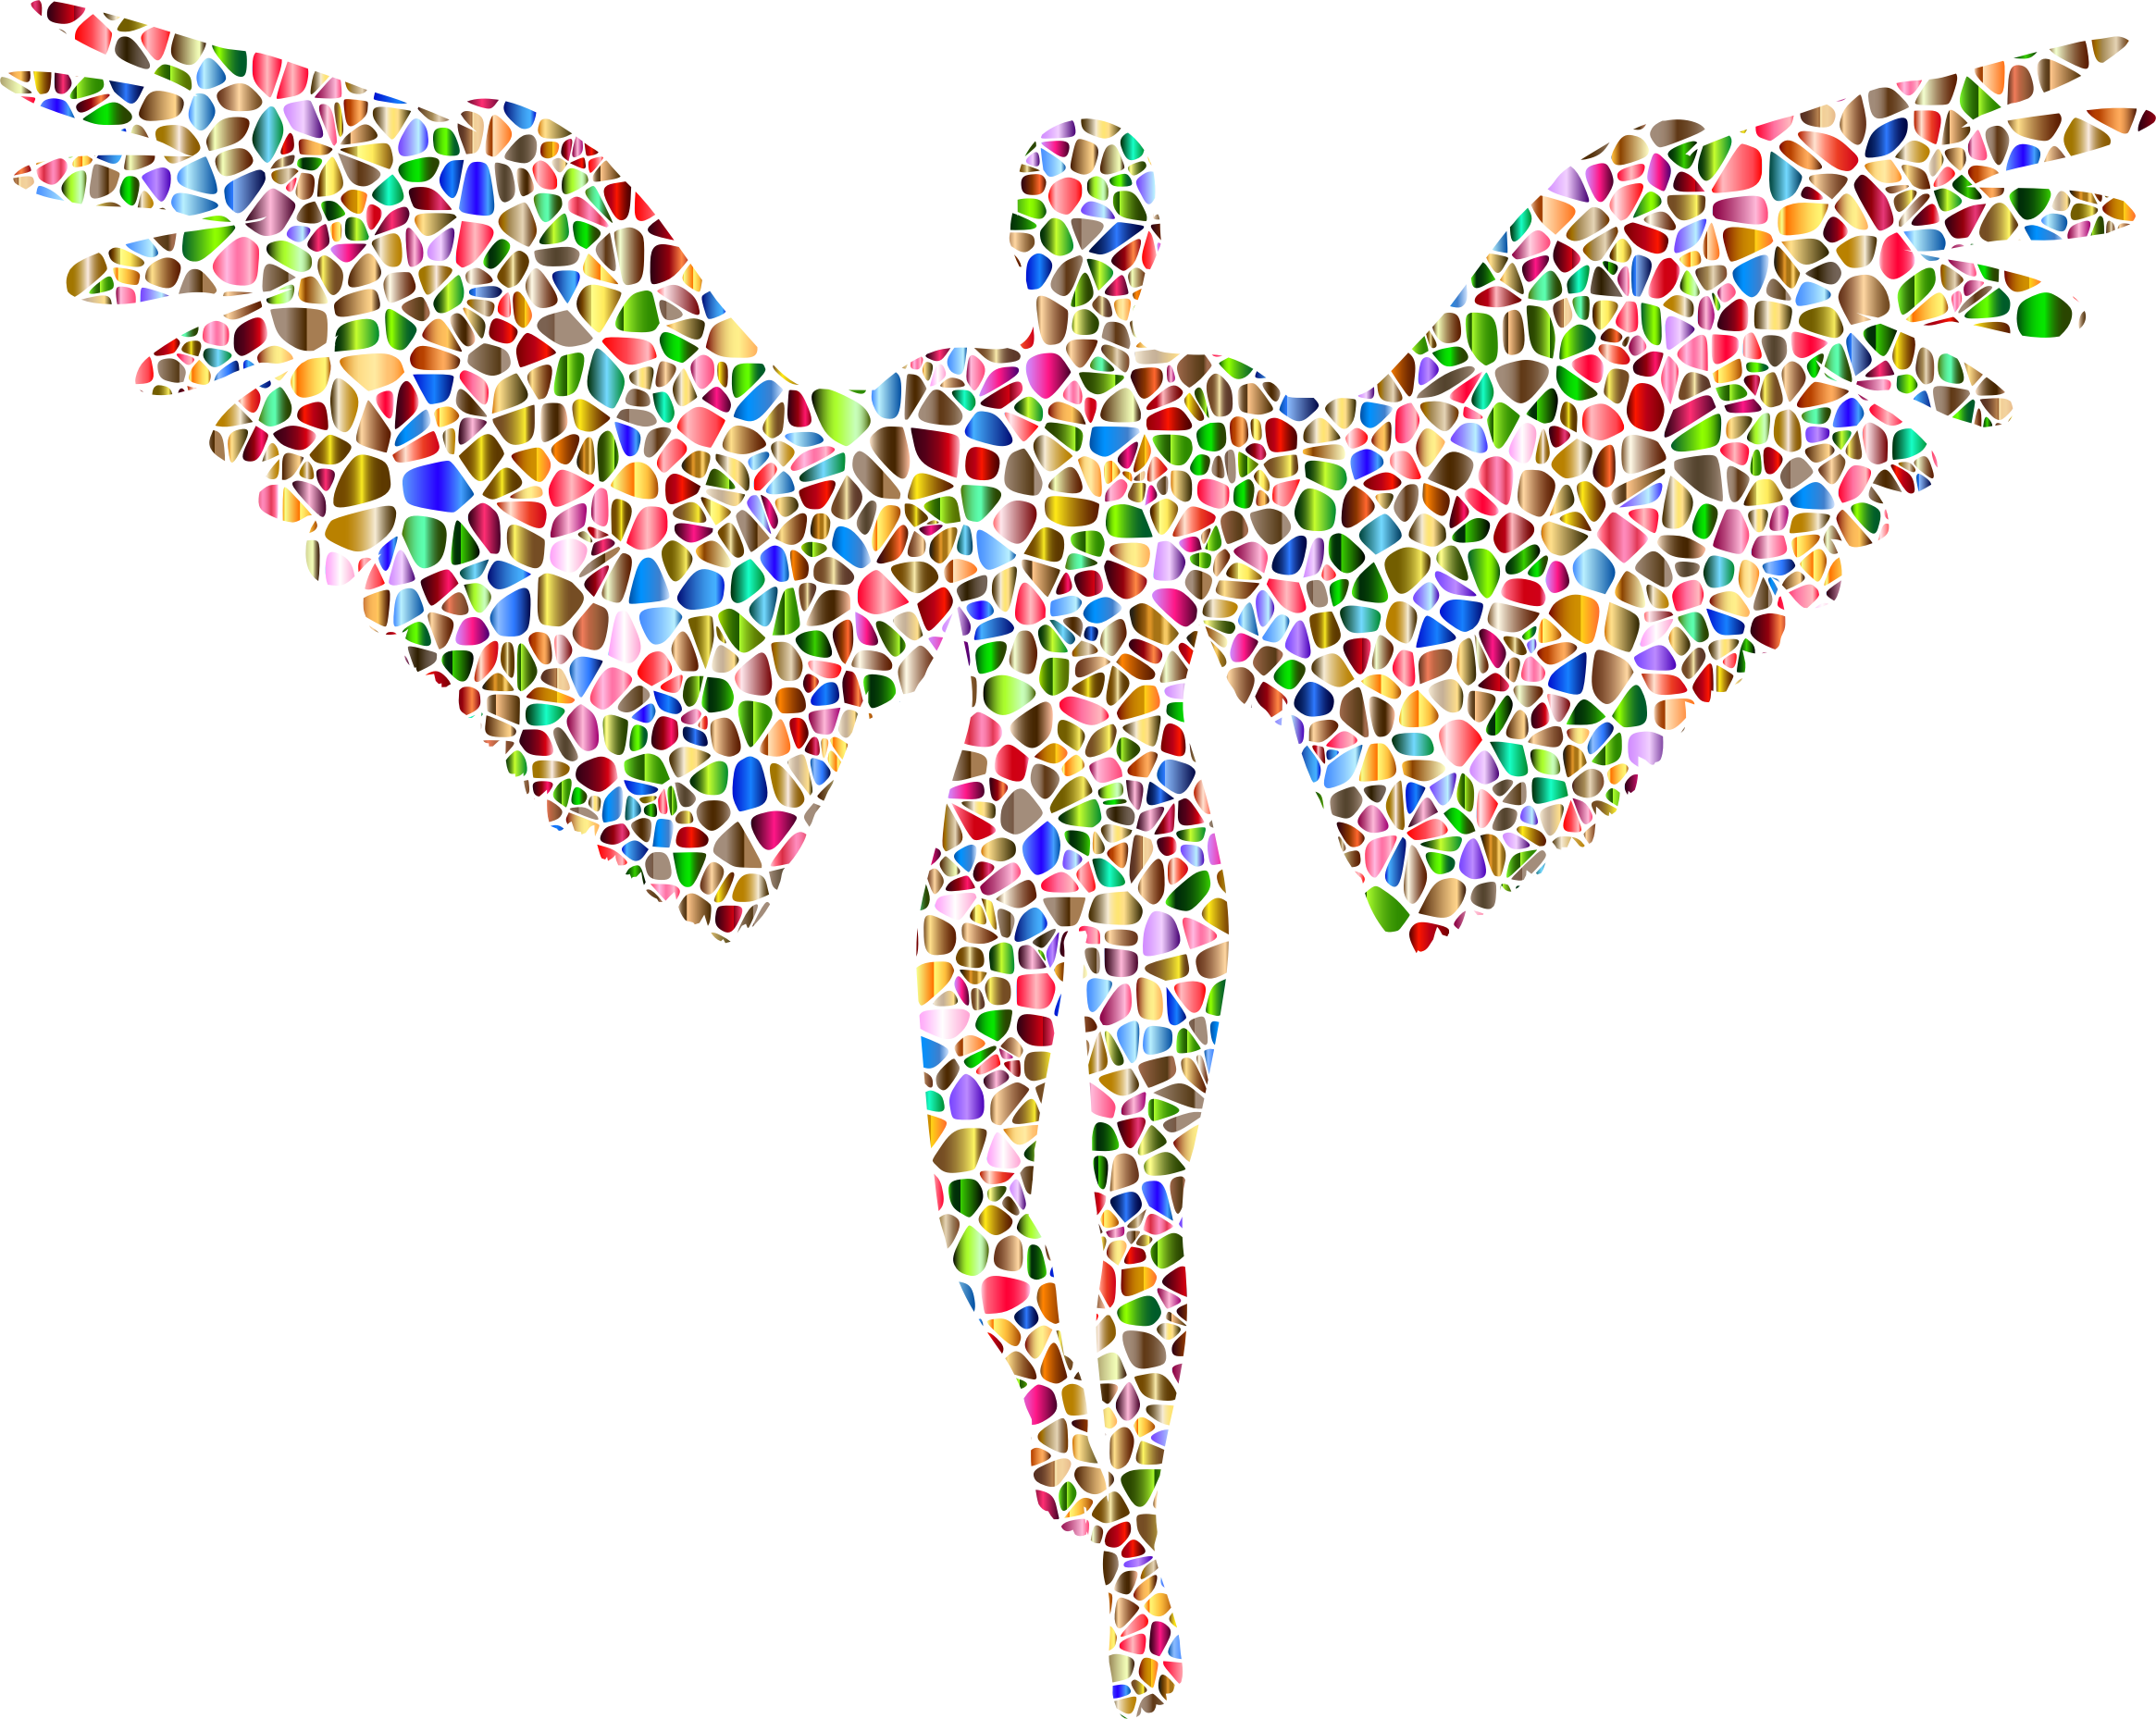 2330x1858 Chromatic Tiled Angel Silhouette No Background Icons Png